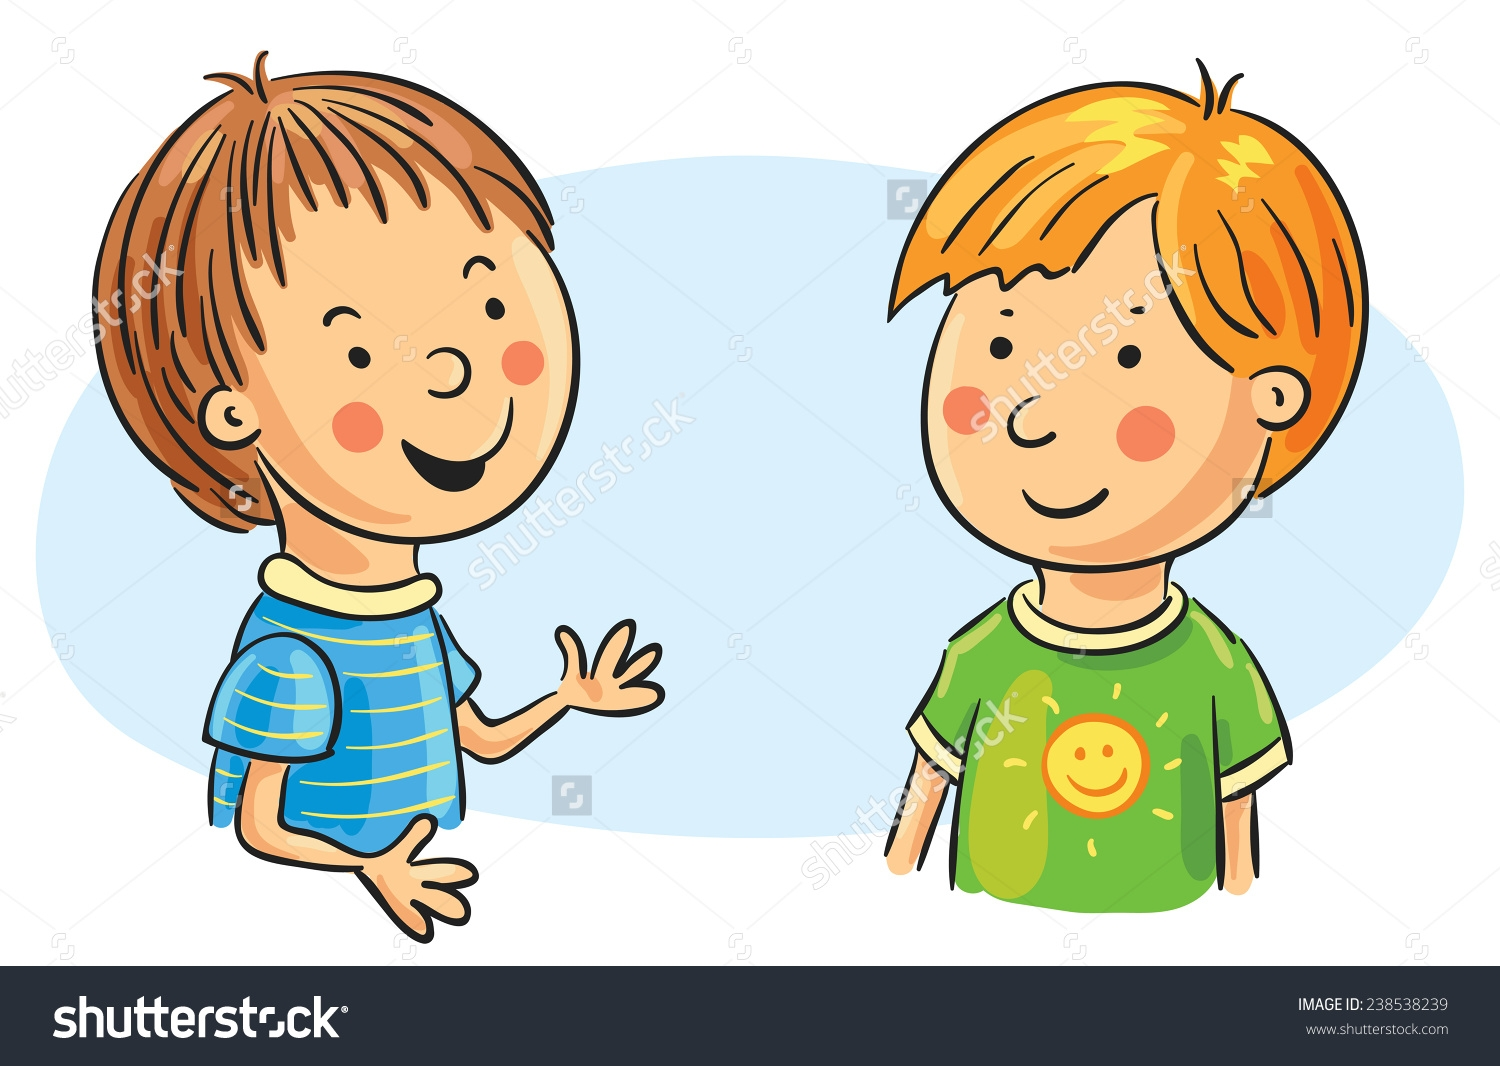 Kids Talking To Each Other Clipart.